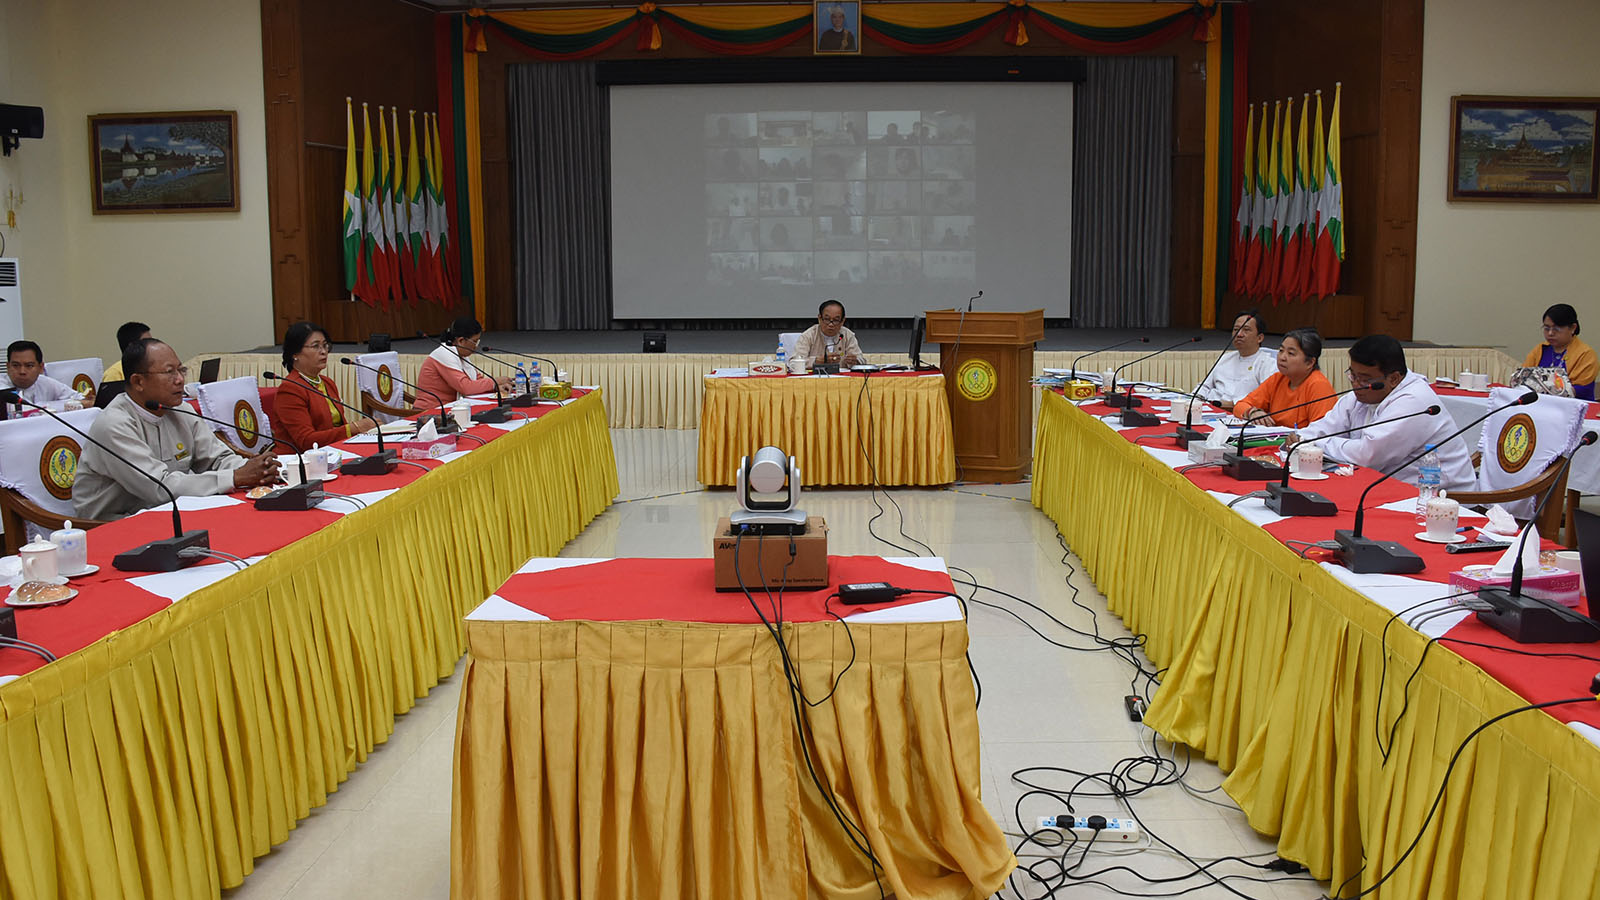 Union Minister Dr Myint Htwe attends the coordination meeting 39/2020 of the pandemic prevention central committee in Nay Pyi Taw yesterday.PHOTO: MNA